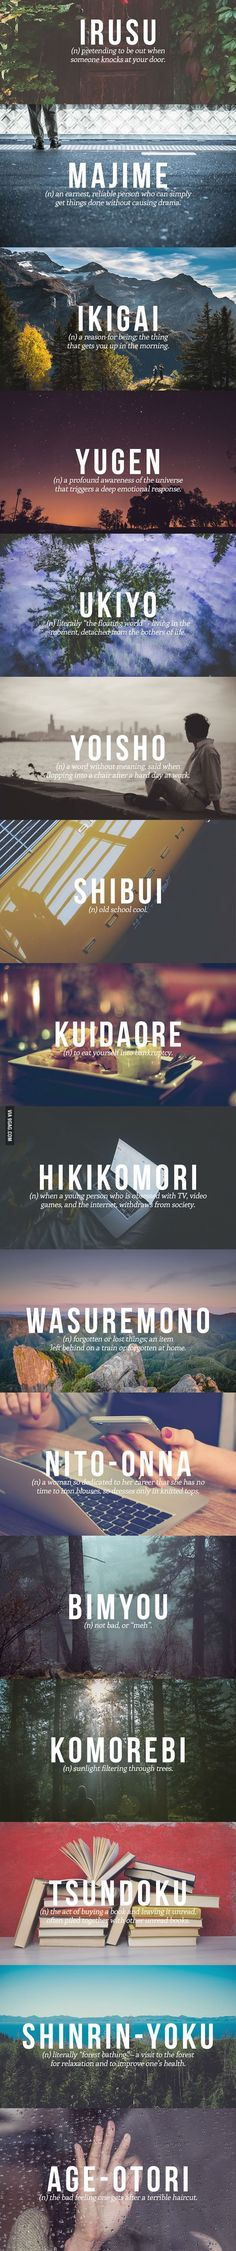 The Perfect Japanese Words You Need In Your Life  the real japan, real japan, japan, japanese, guide, tips, resource, tips, tricks, information, guide, community, adventure, explore, trip, tour, vacation, holiday, planning, travel, tourist, tourism, backpack, hiking, manga, anime